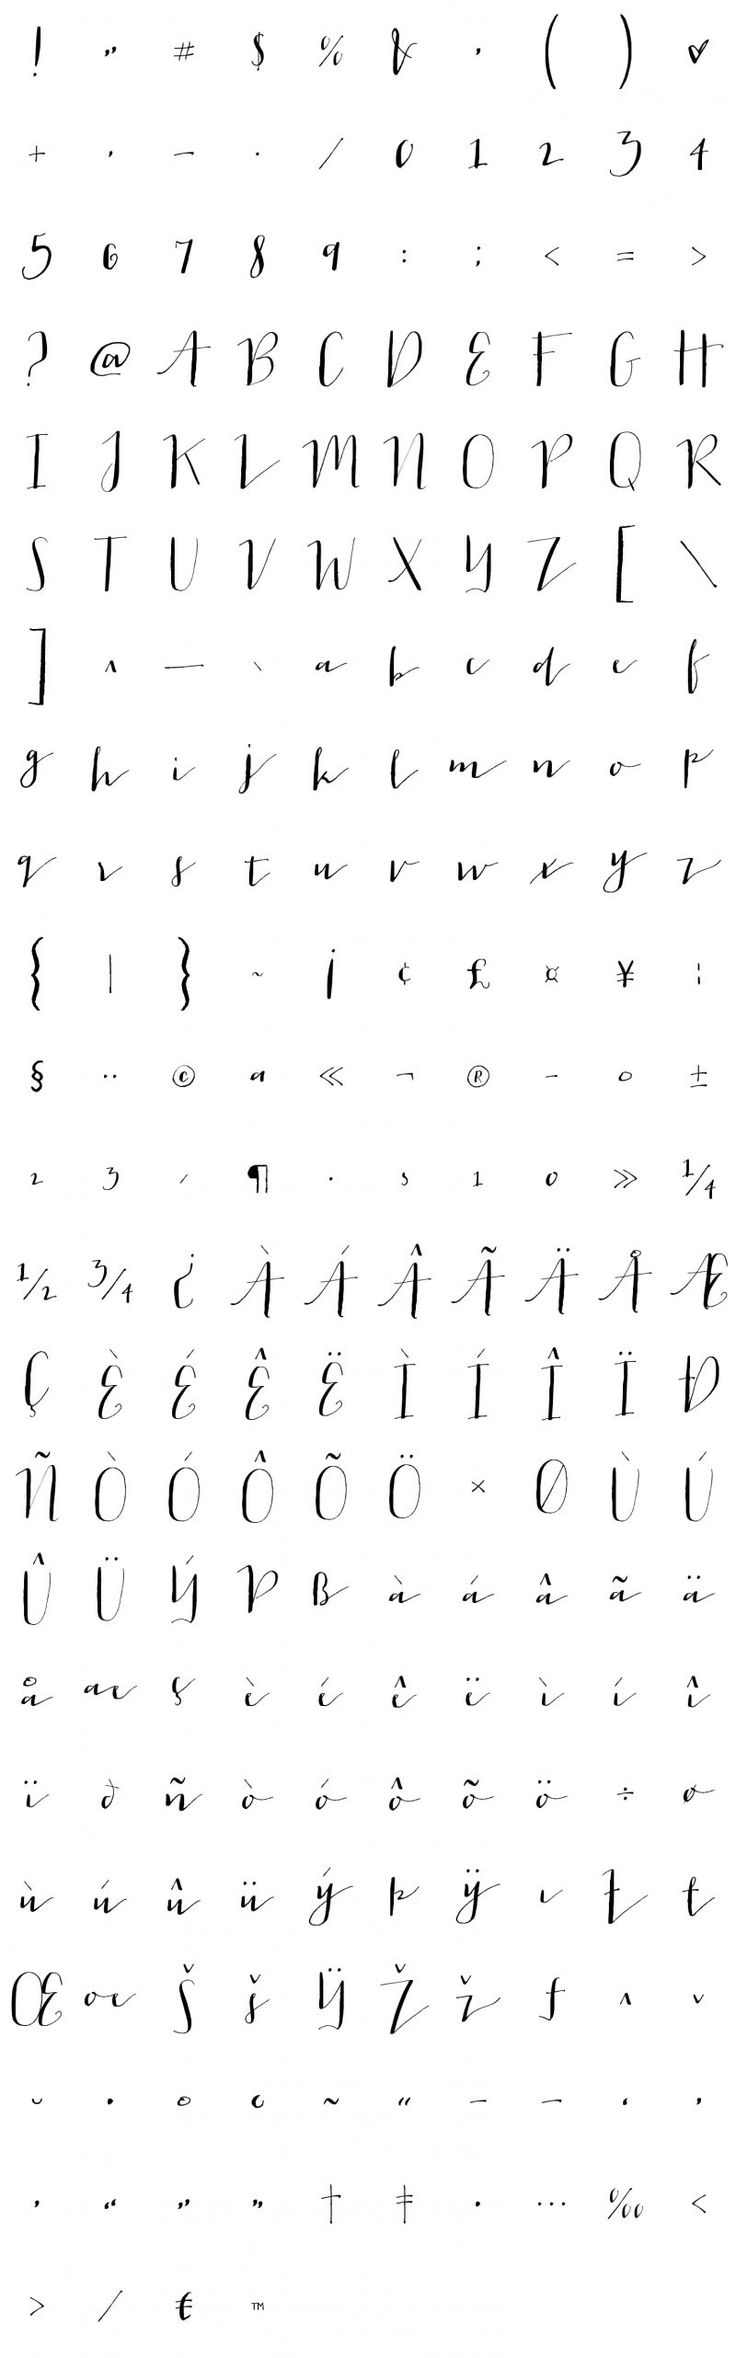 Jacques Gilles Glyphs - the whole thing for reference